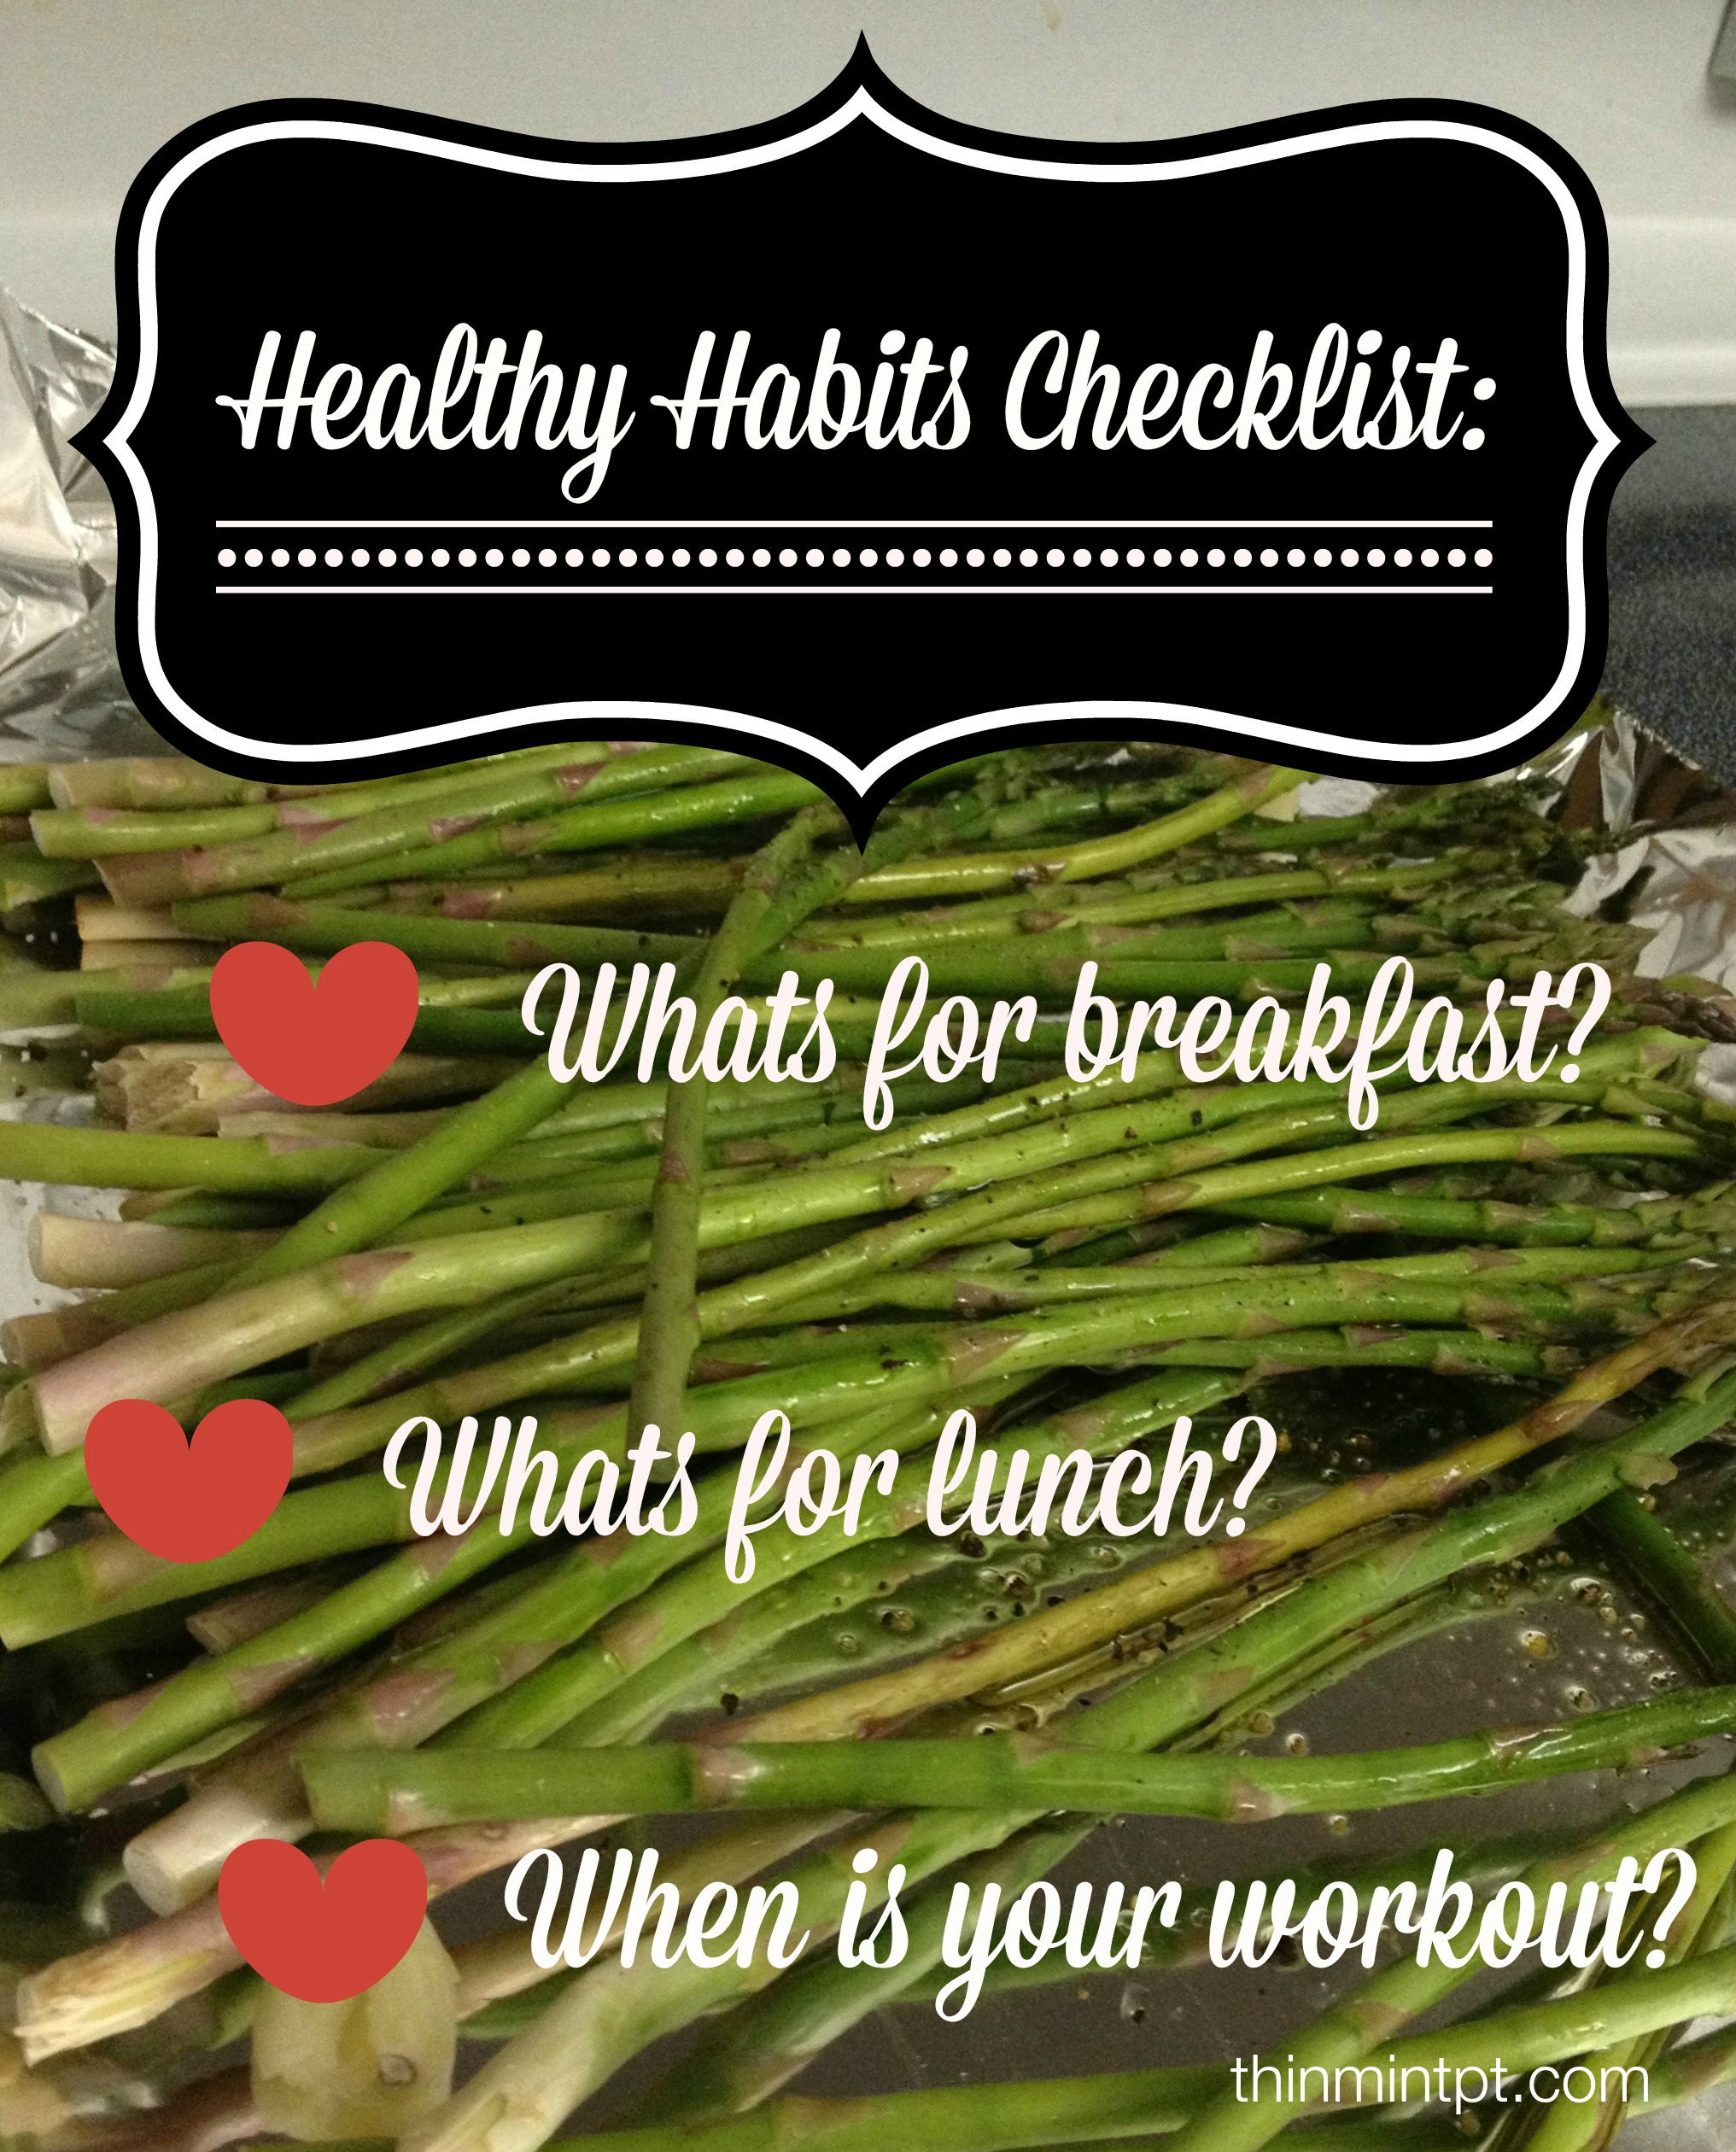 Healthy Habits Checklist